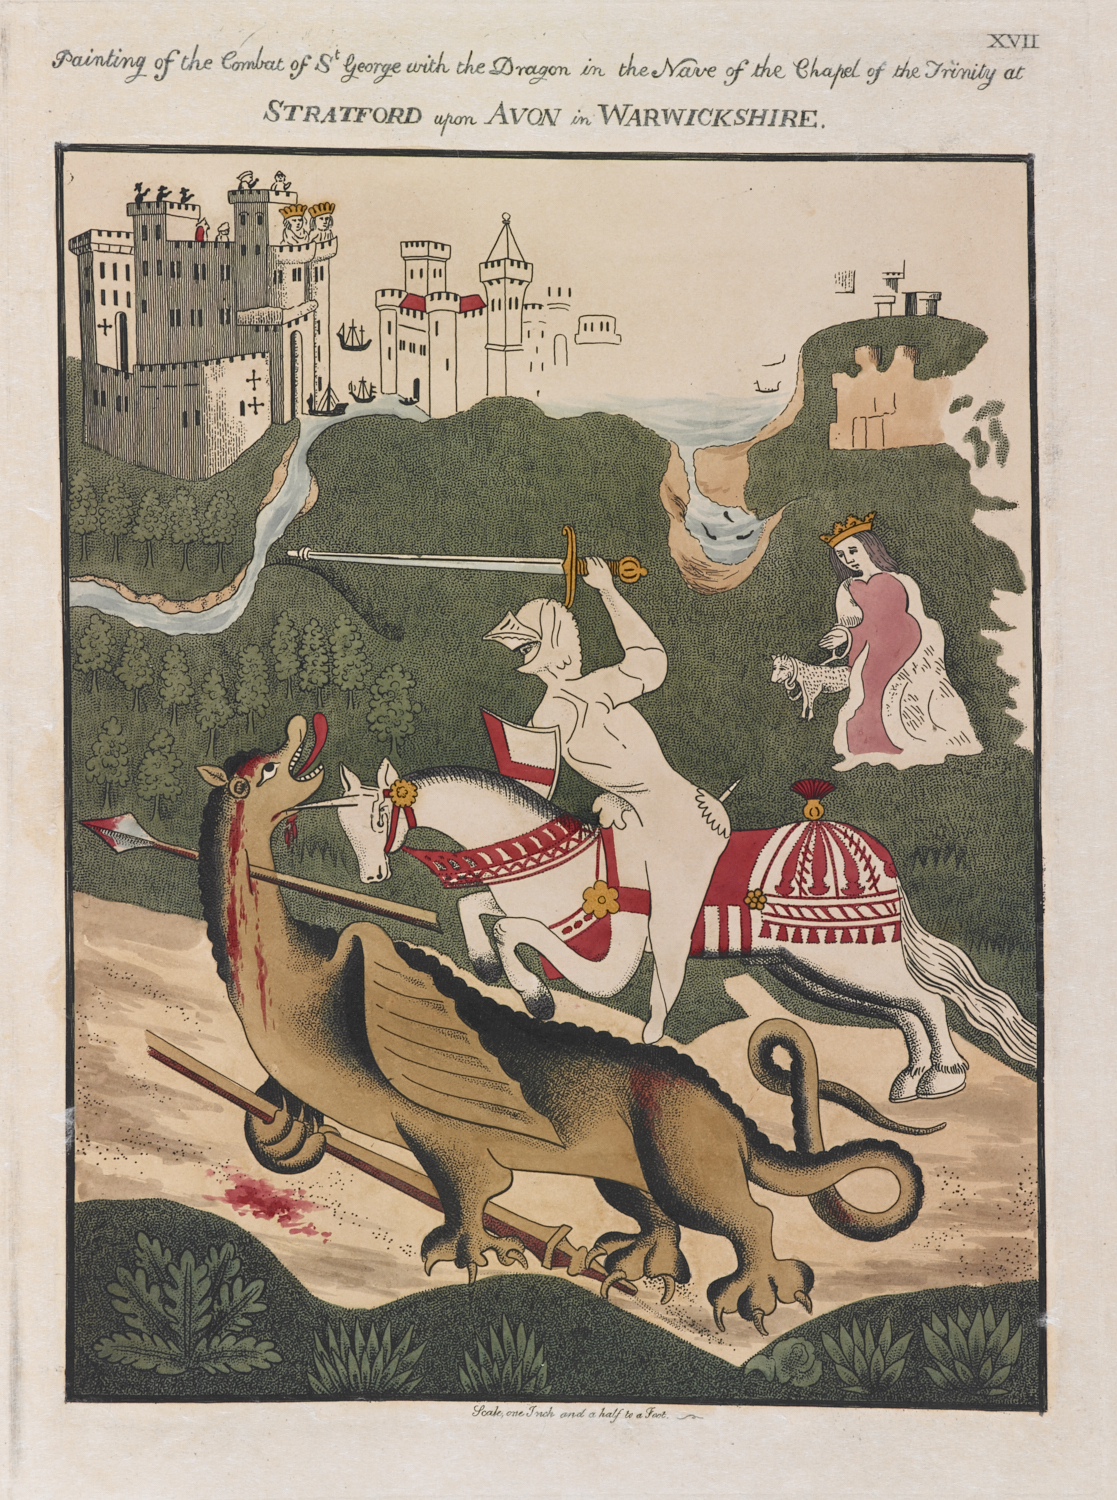 Plate showing Painting of the Combat of St George with the Dragon after an original fresco on the Nave of the Chapel of the Trinity at Stratford upon Avon